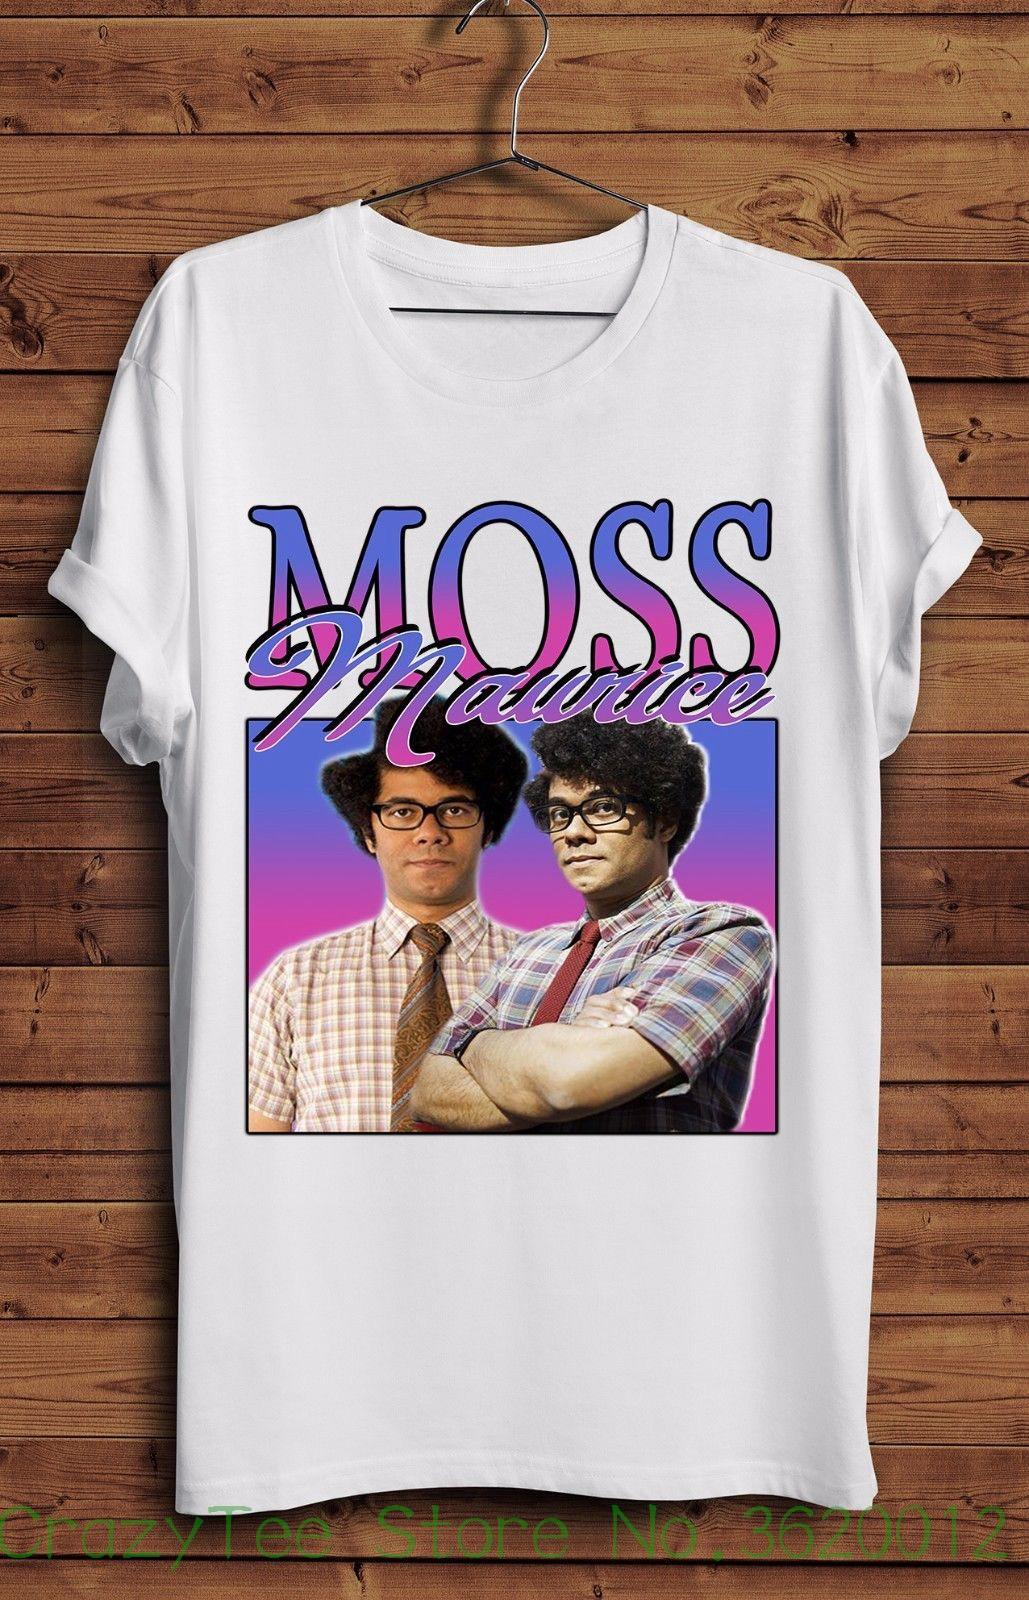 cd1863309ef Women S Tee Moss It Crowd T Shirt Vintage Geek Roy Jen Nerd Maurice New  Homage T Shirts Clothing Wholesale Ti Shirt Best T Shirt Sites From  Crazyteestore